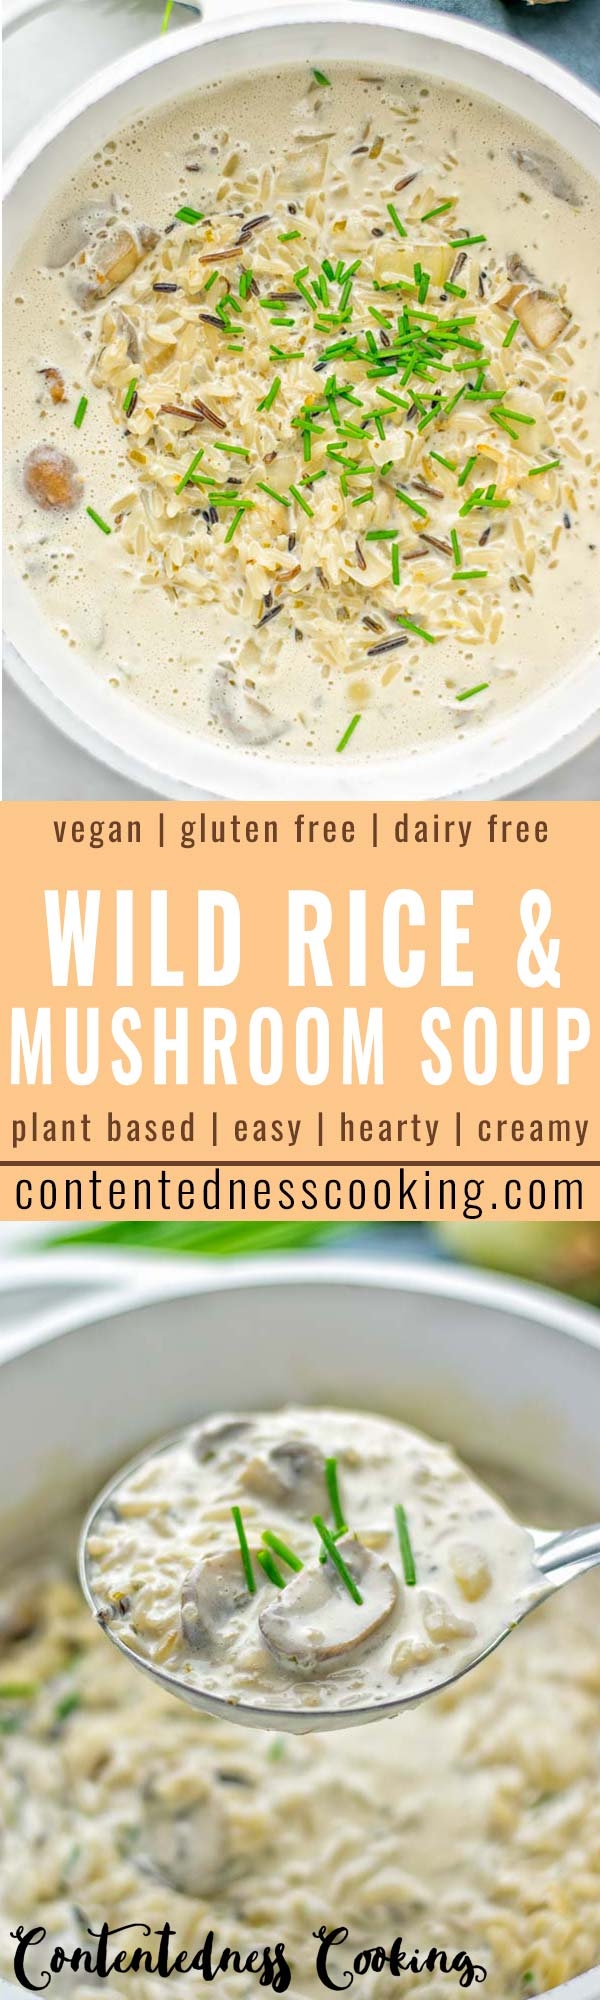 This Wild Rice and Mushroom Soup is entirely vegan, gluten free, and super easy to make in one pot. So amazing for the holidays, Christmas, dinner, lunch, meal preparation and work lunches. If you're looking for a super easy and delicious one pot meal, you will make this over and over again. #vegan #glutenfree #dairyfree #vegetarian #onepotmeals #holidays #christmas #contentednesscooking #mushrooms #soup #wildricesoup #mushroomsoup #dinner #lunch #mealprep #worklunchideas